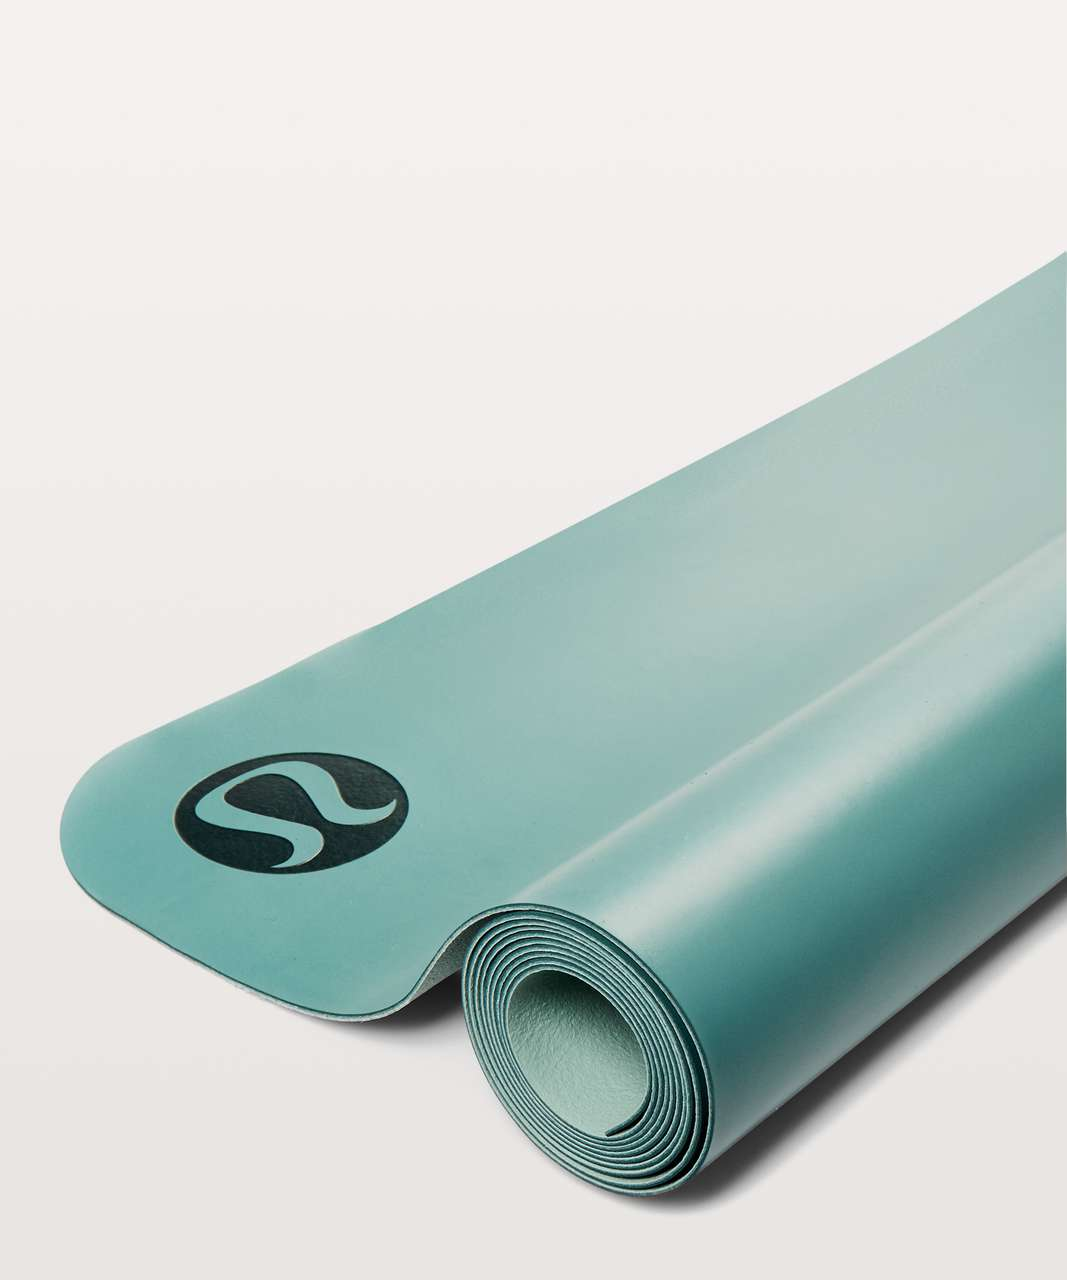 Lululemon The Reversible (Un) Mat *Lightweight Travel - Sea Green / Tonic Sea